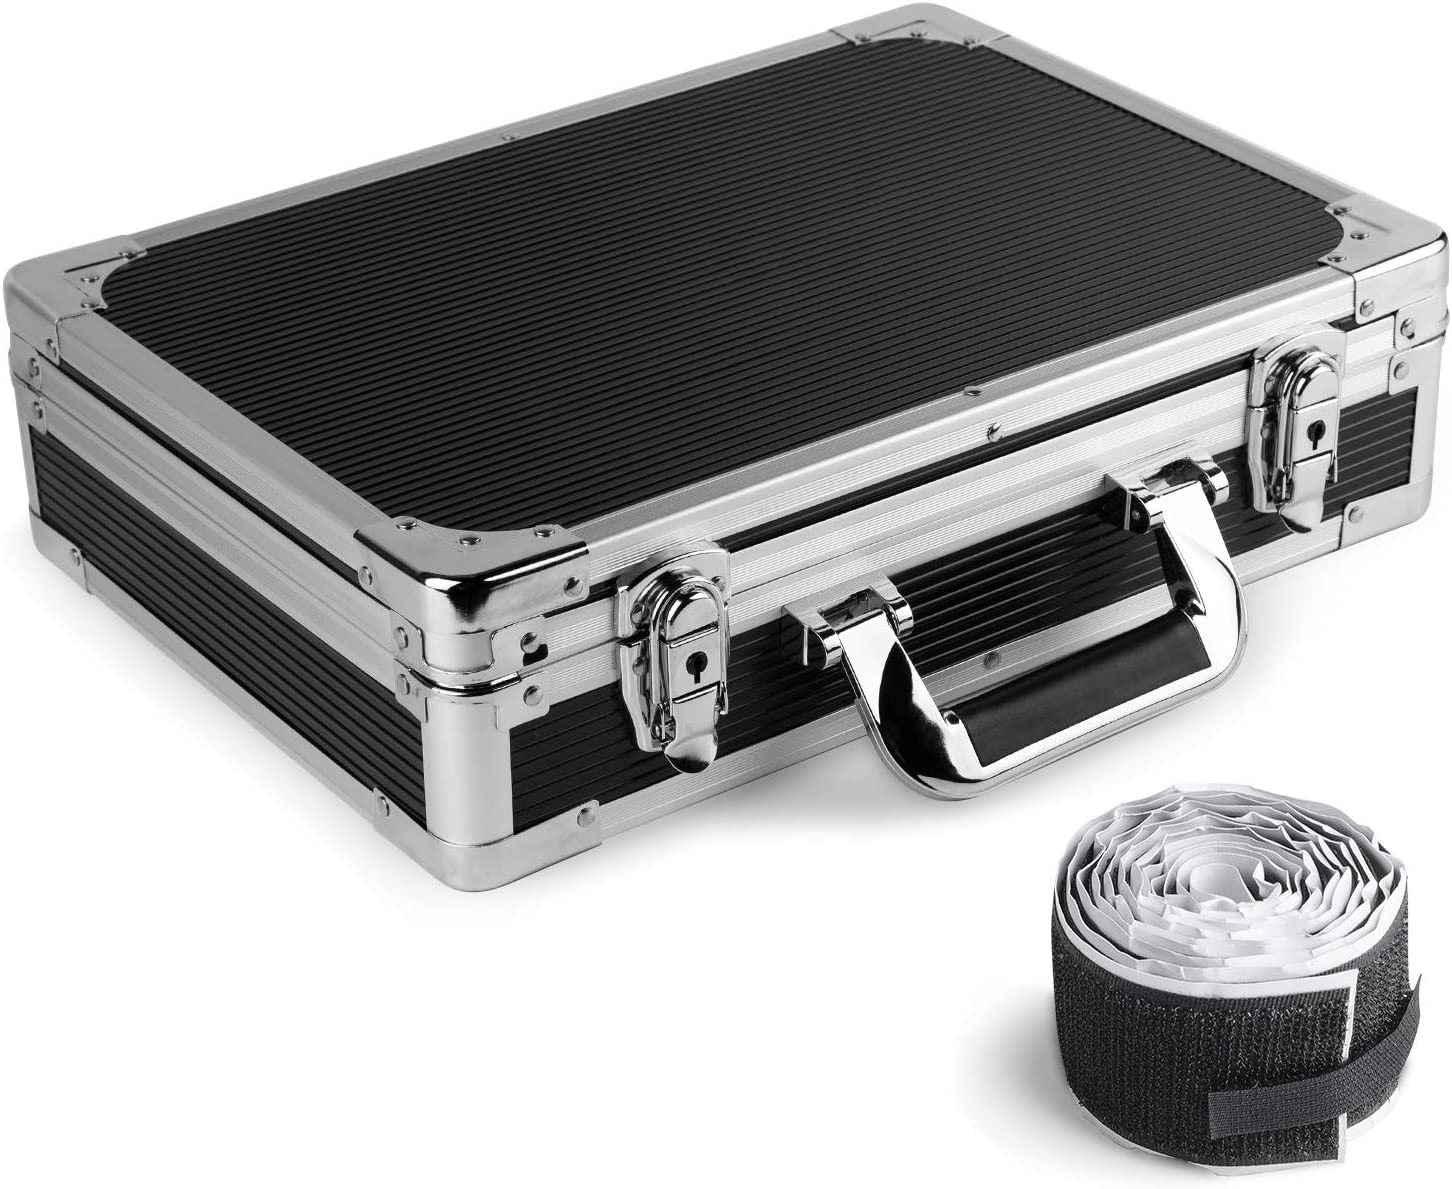 15 x 10.8 x 3.74 in Foam Padded Interior and Pedal Mounting Tape Fastener Vangoa Ghost Fire Sturdy Locking Aluminum Guitar Effect Pedal Case Locking with Aluminum Edge